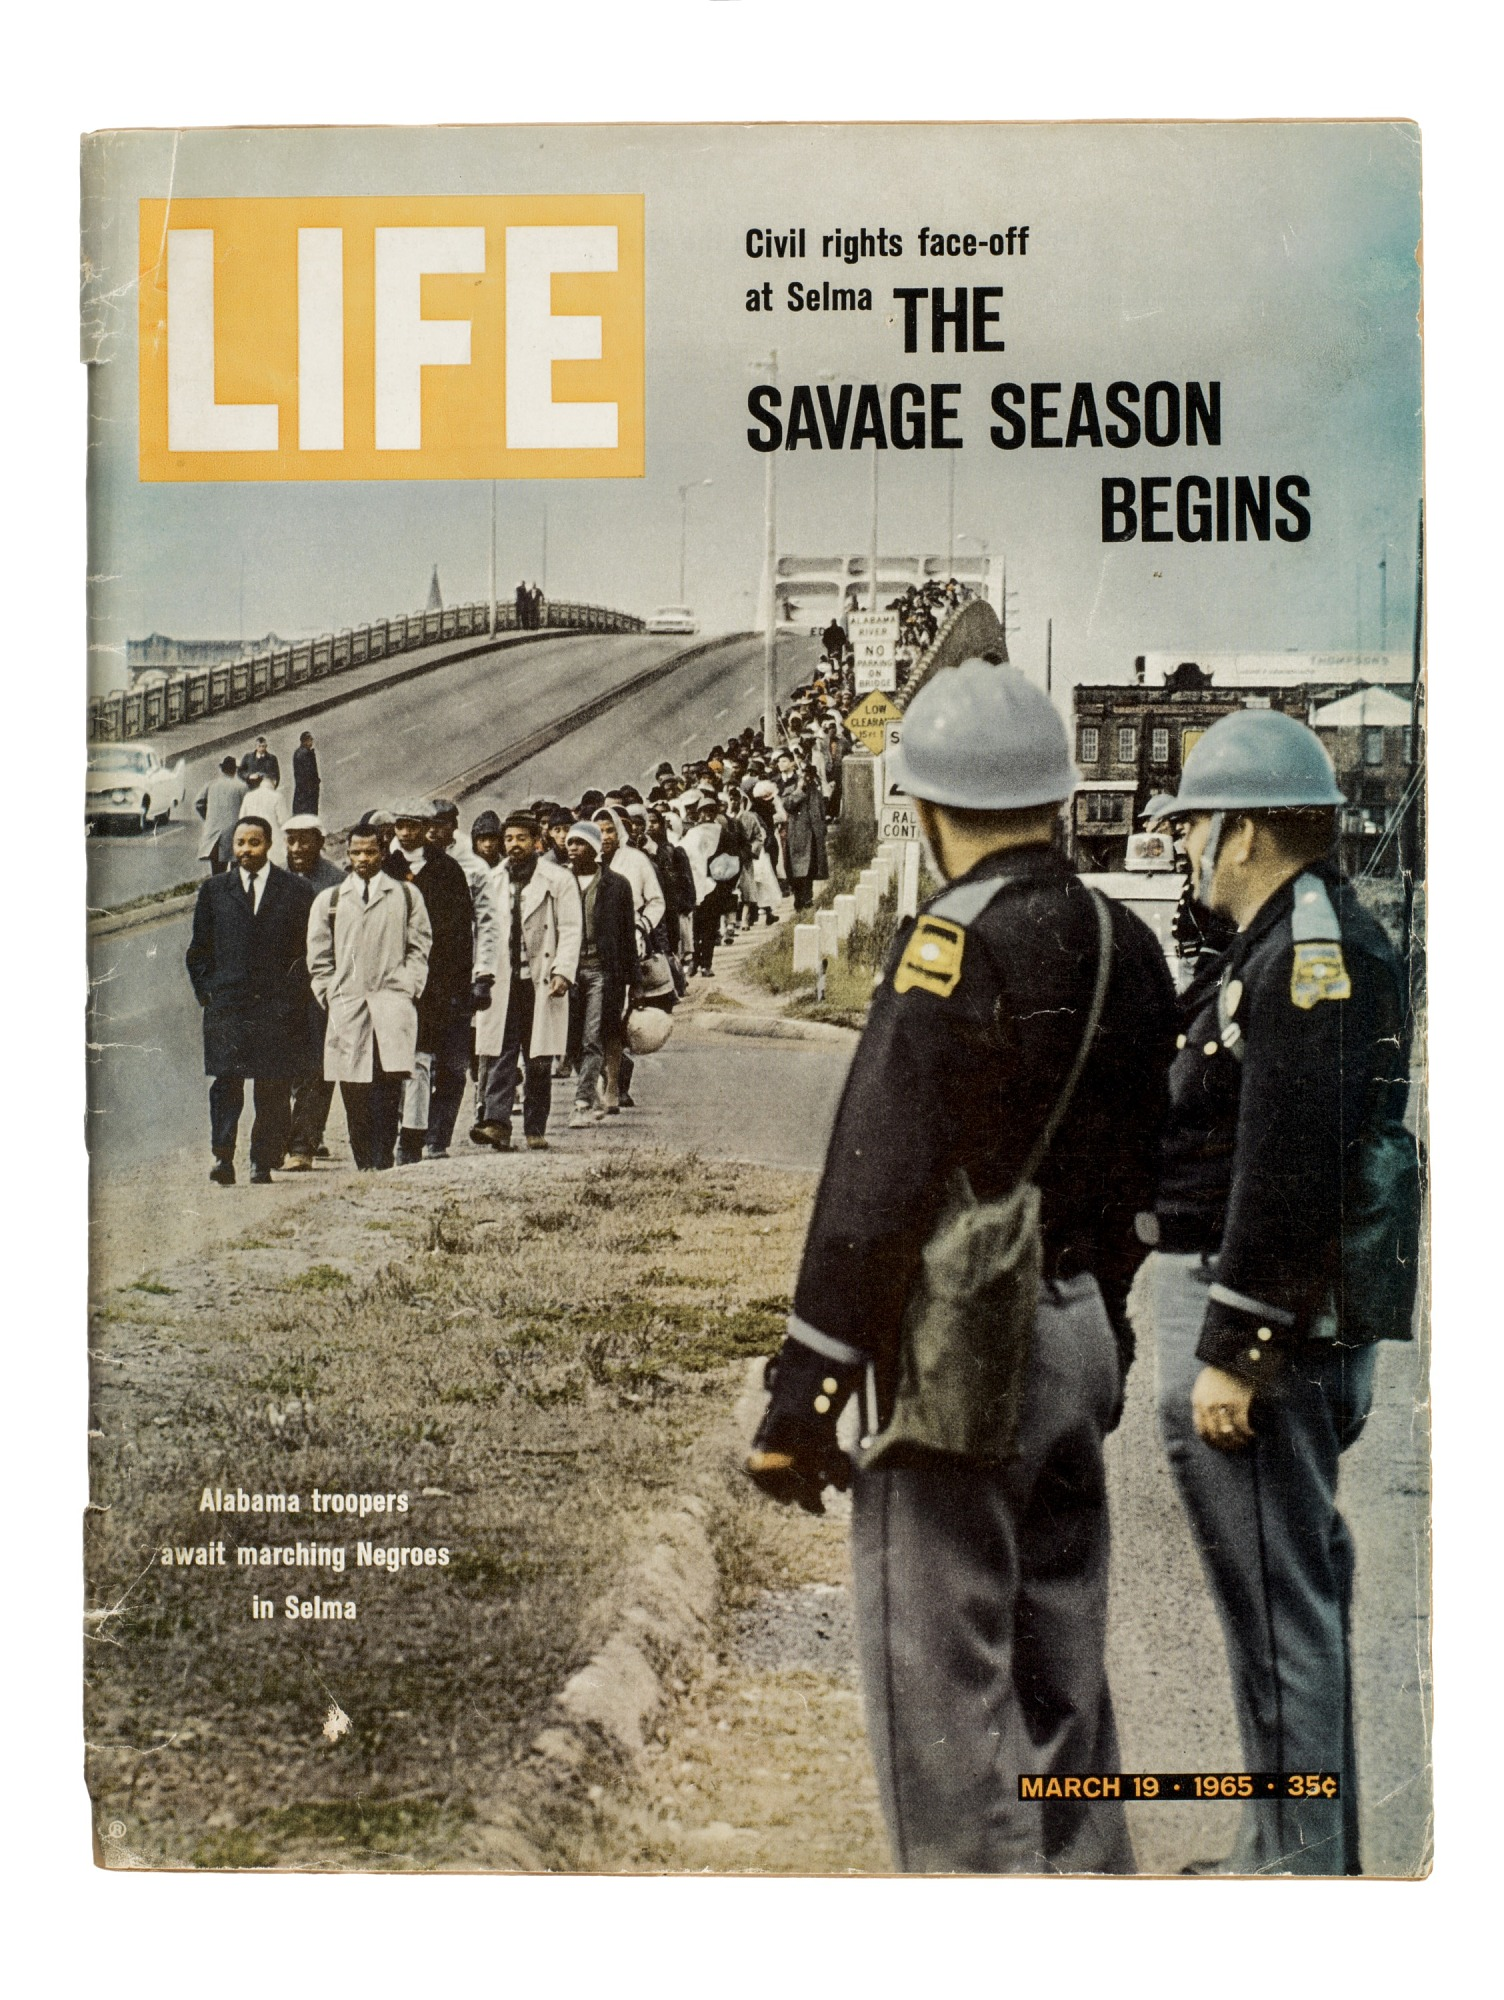 A Life Magazine cover showing protesters marching in Selma, led by John Lewis.